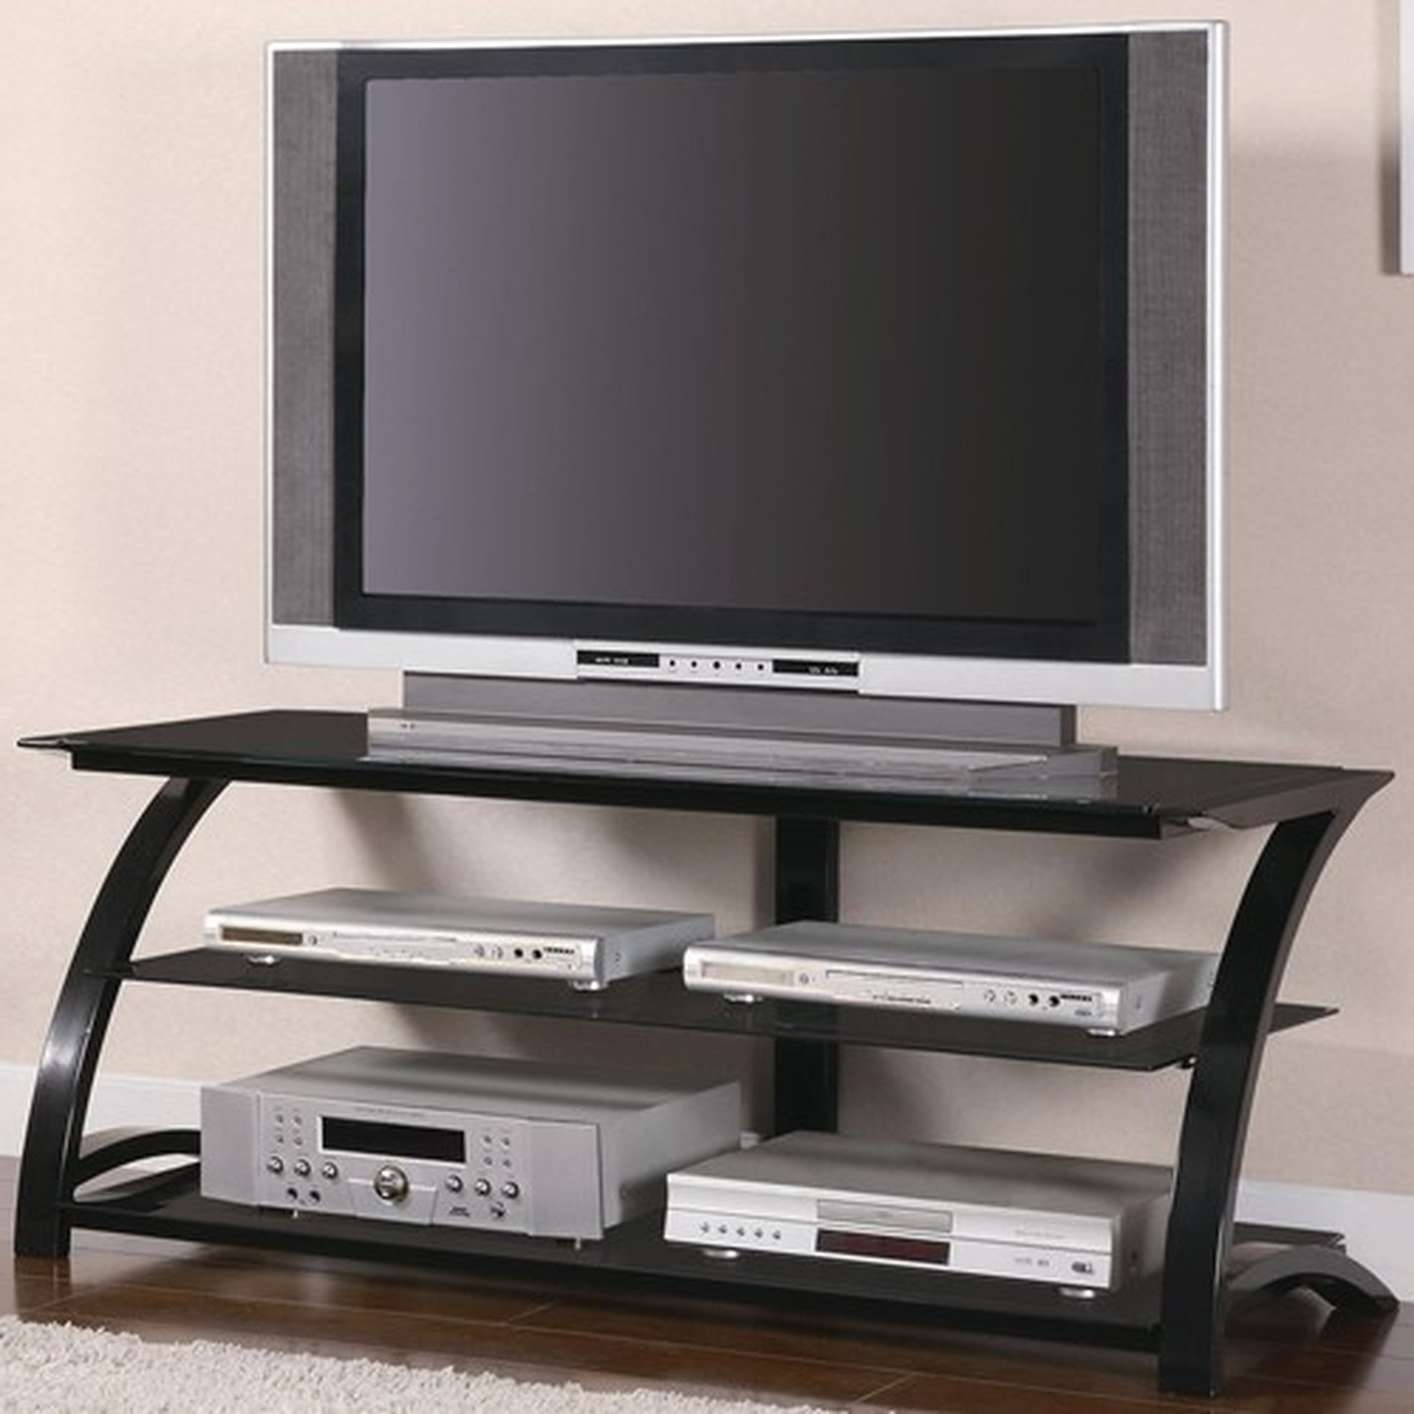 Black Glass Tv Stand – Steal A Sofa Furniture Outlet Los Angeles Ca Regarding Glass Tv Stands (View 3 of 15)